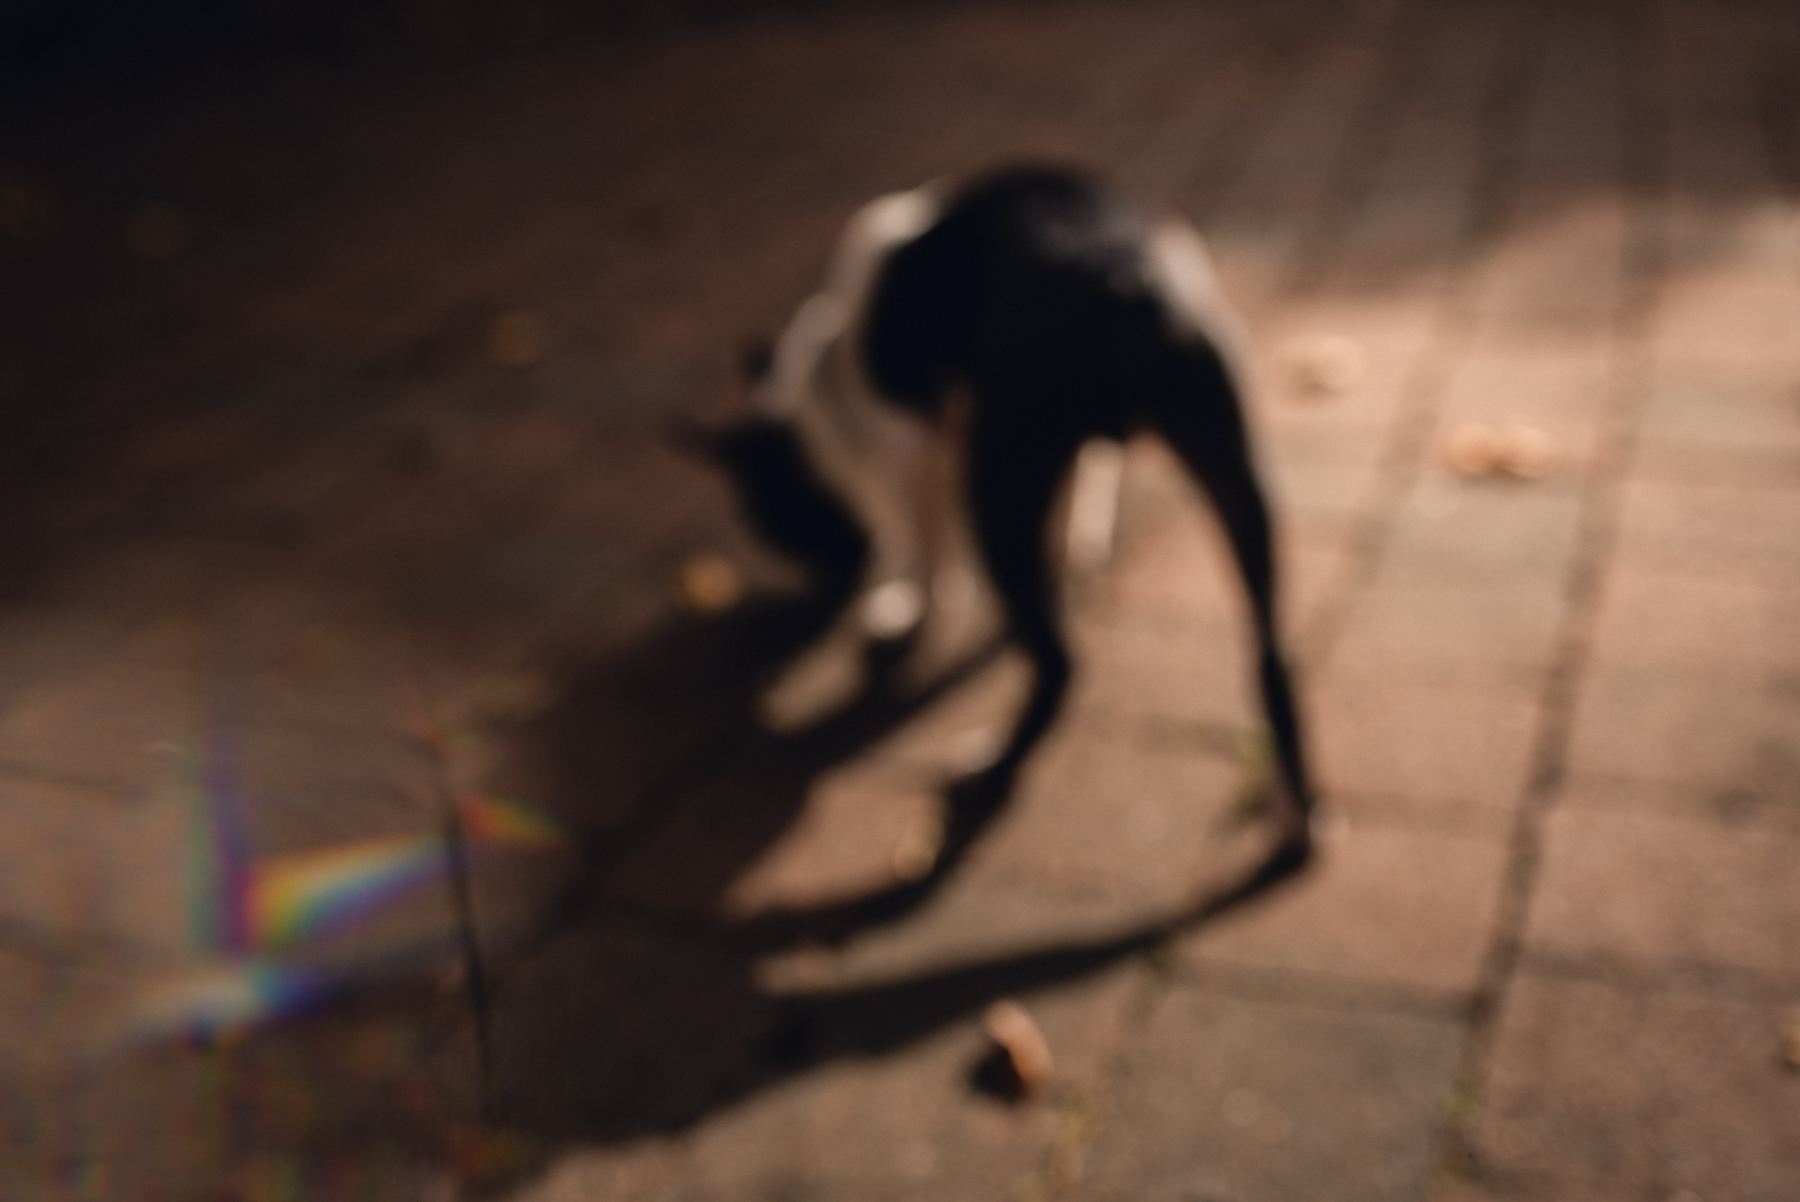 out of focus dog image created with a prism by megan cieloha